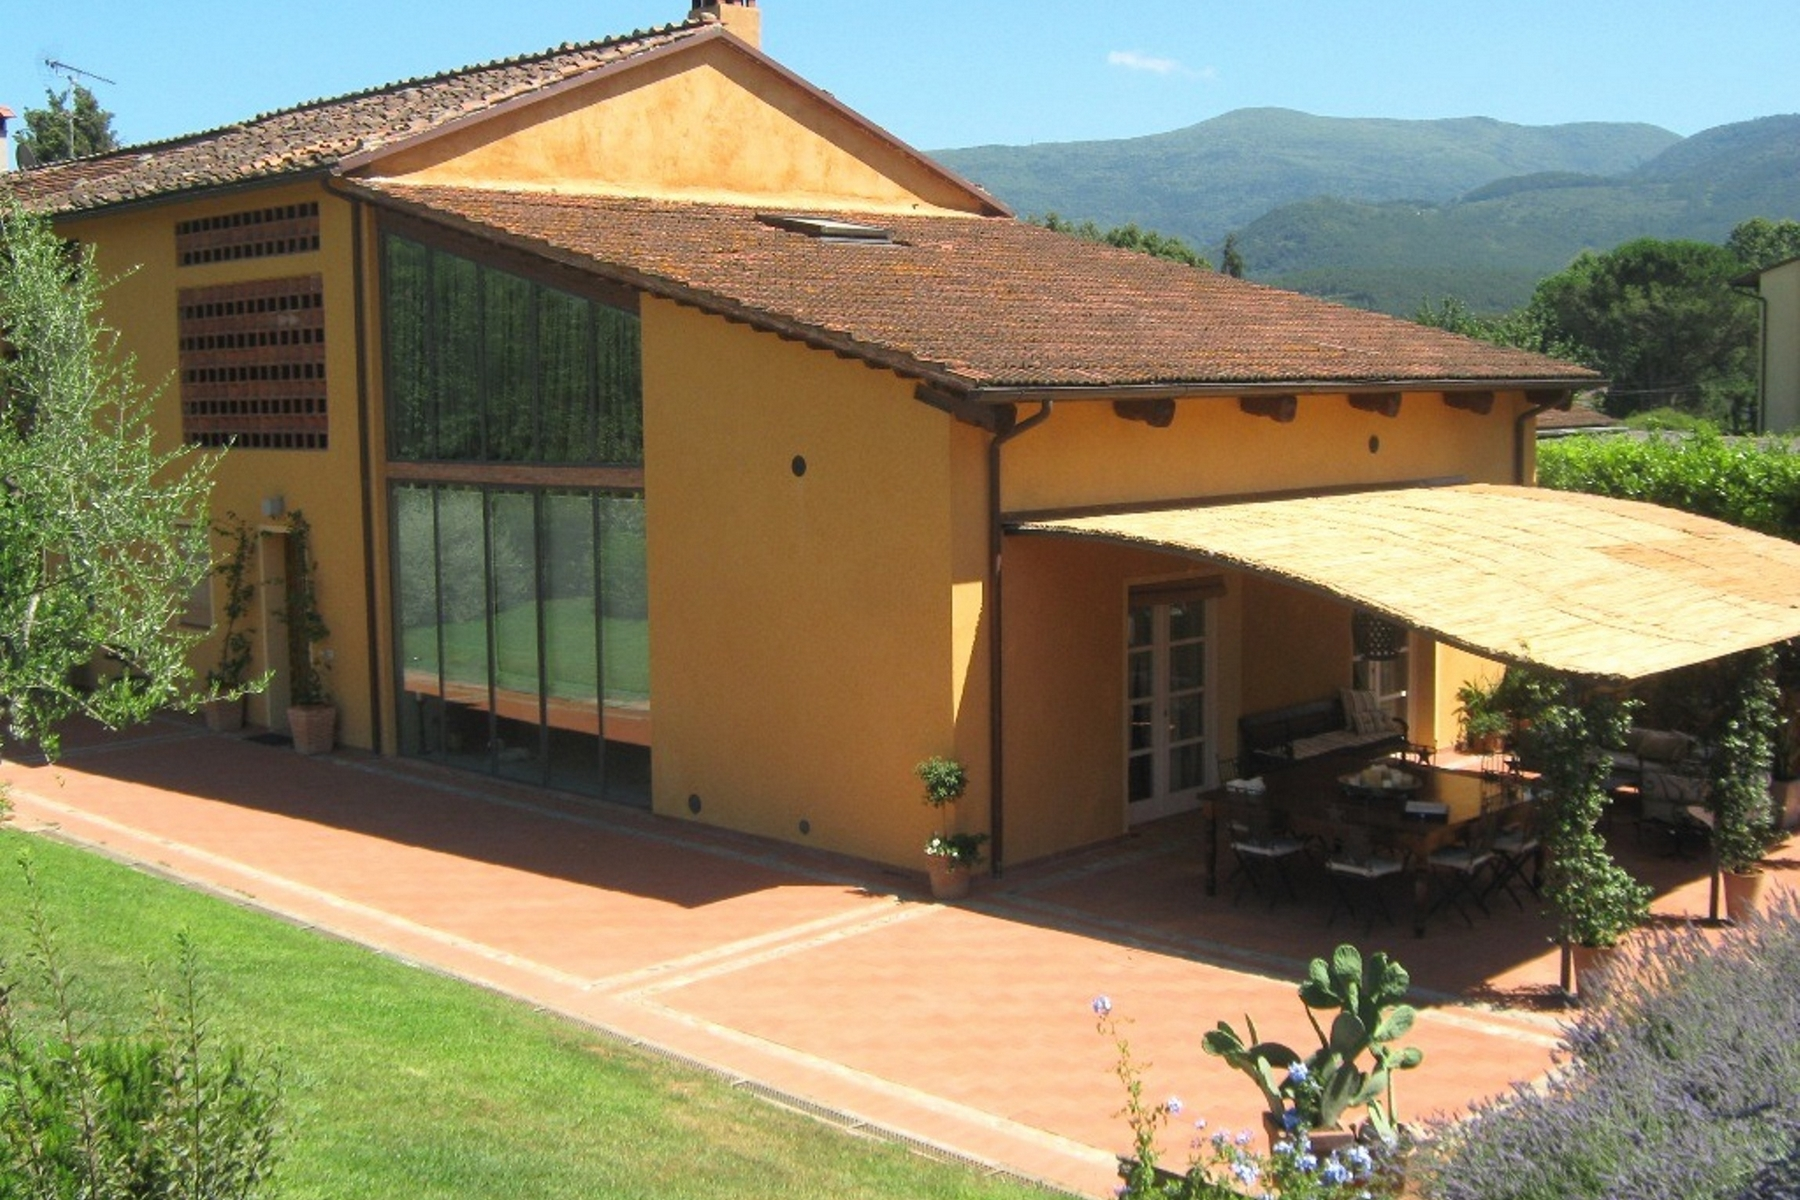 Additional photo for property listing at Adorable farmhouse in the Lucca country-side Via della Fornace Vicopelago, Lucca 55100 Italy